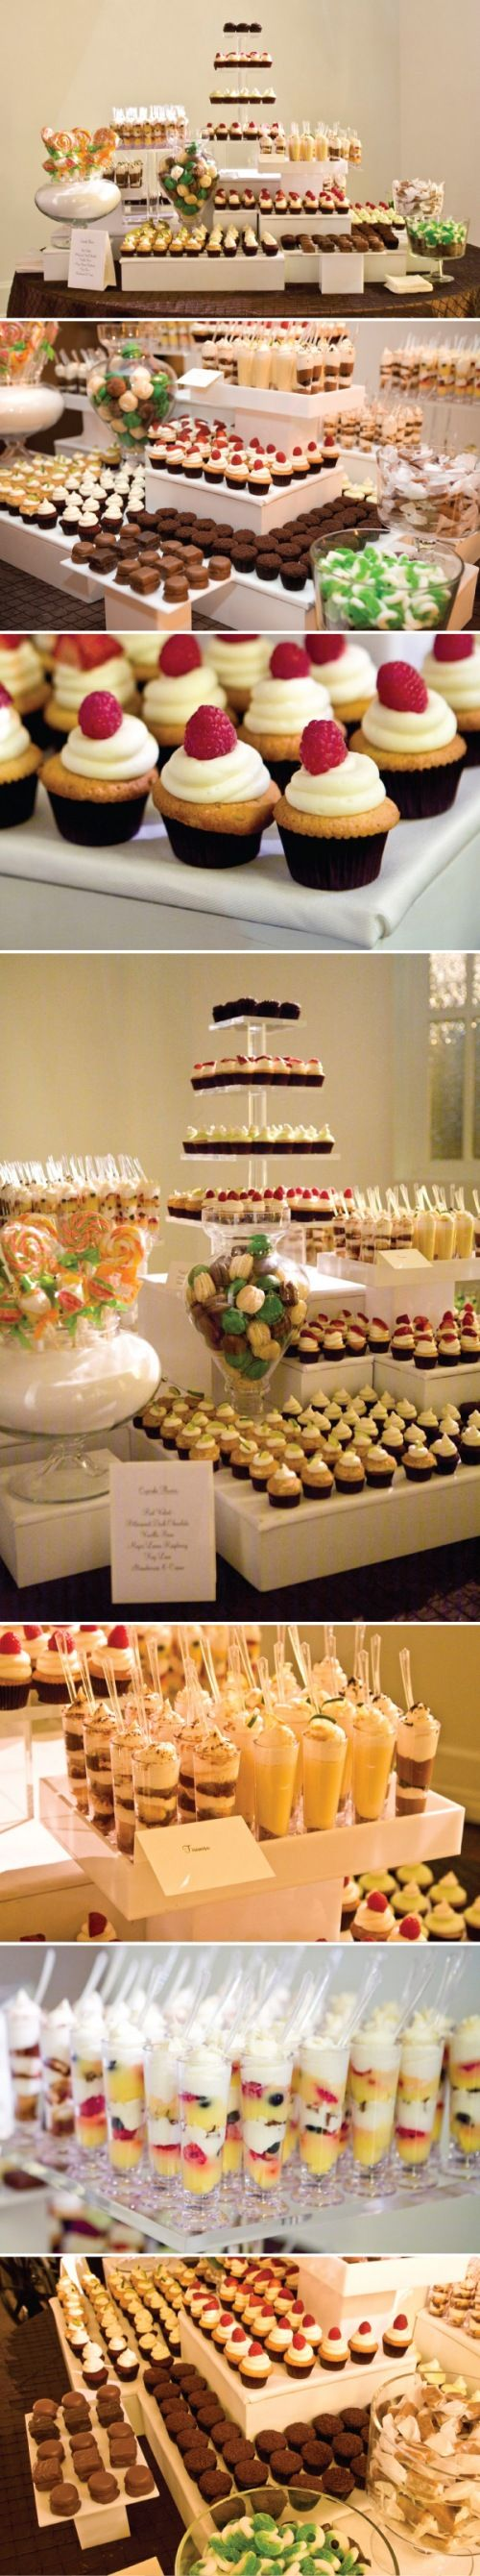 sweets bar instead of just one big cake? Good idea instead of getting a huge cake that no one eats and just getting a 2 tier cake to cut and keep the top for tradition.